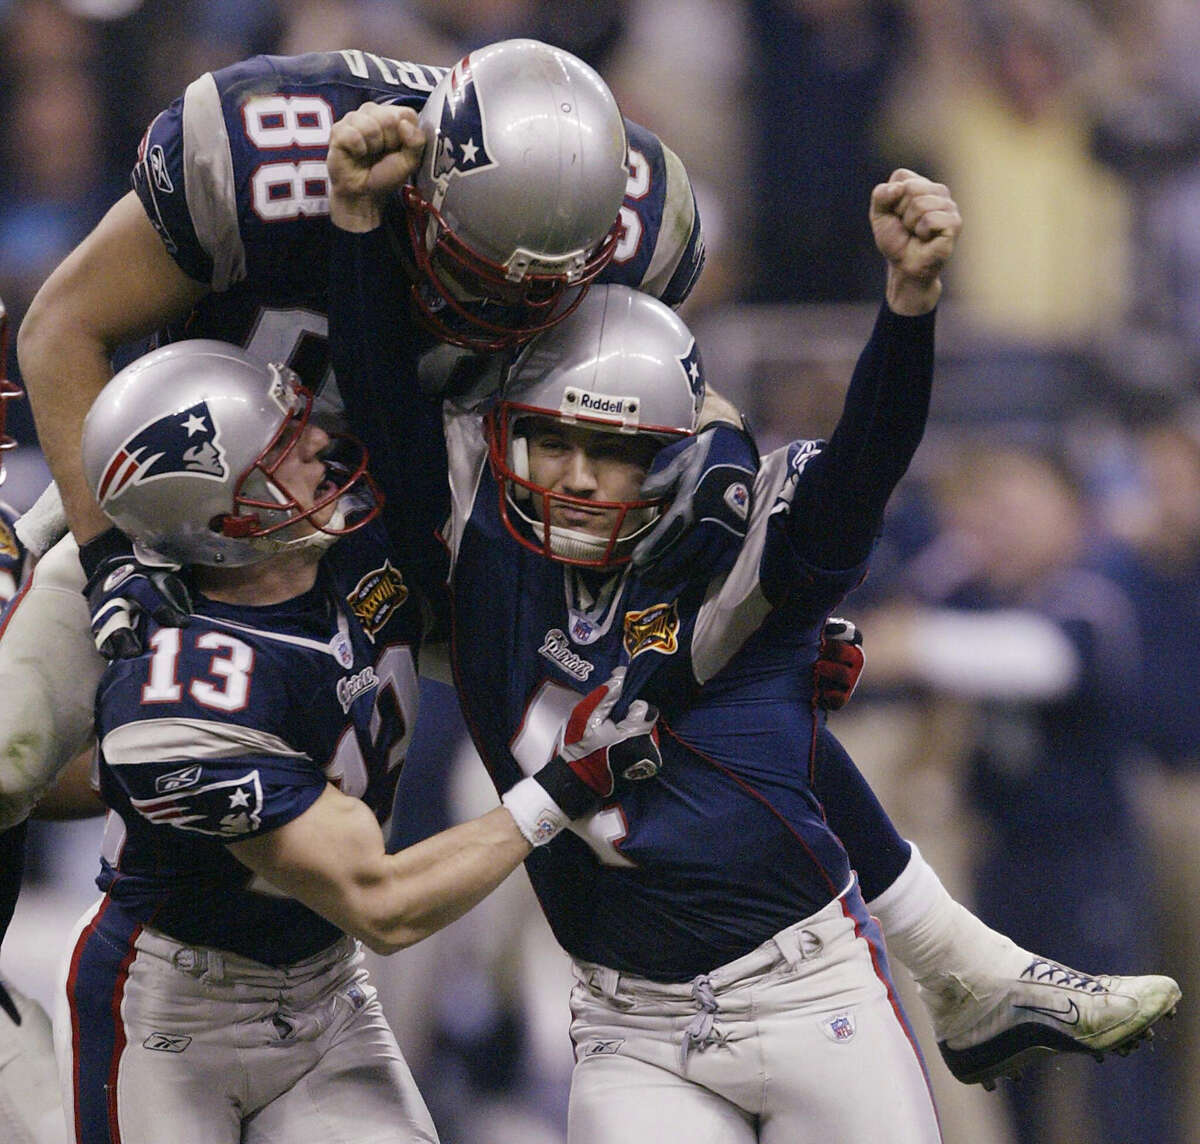 Patriots kicker Adam Vinatieri, right, celebrates after his go-ahead field goal late in Super Bowl XXXVIII against the Panthers at Reliant Stadium.